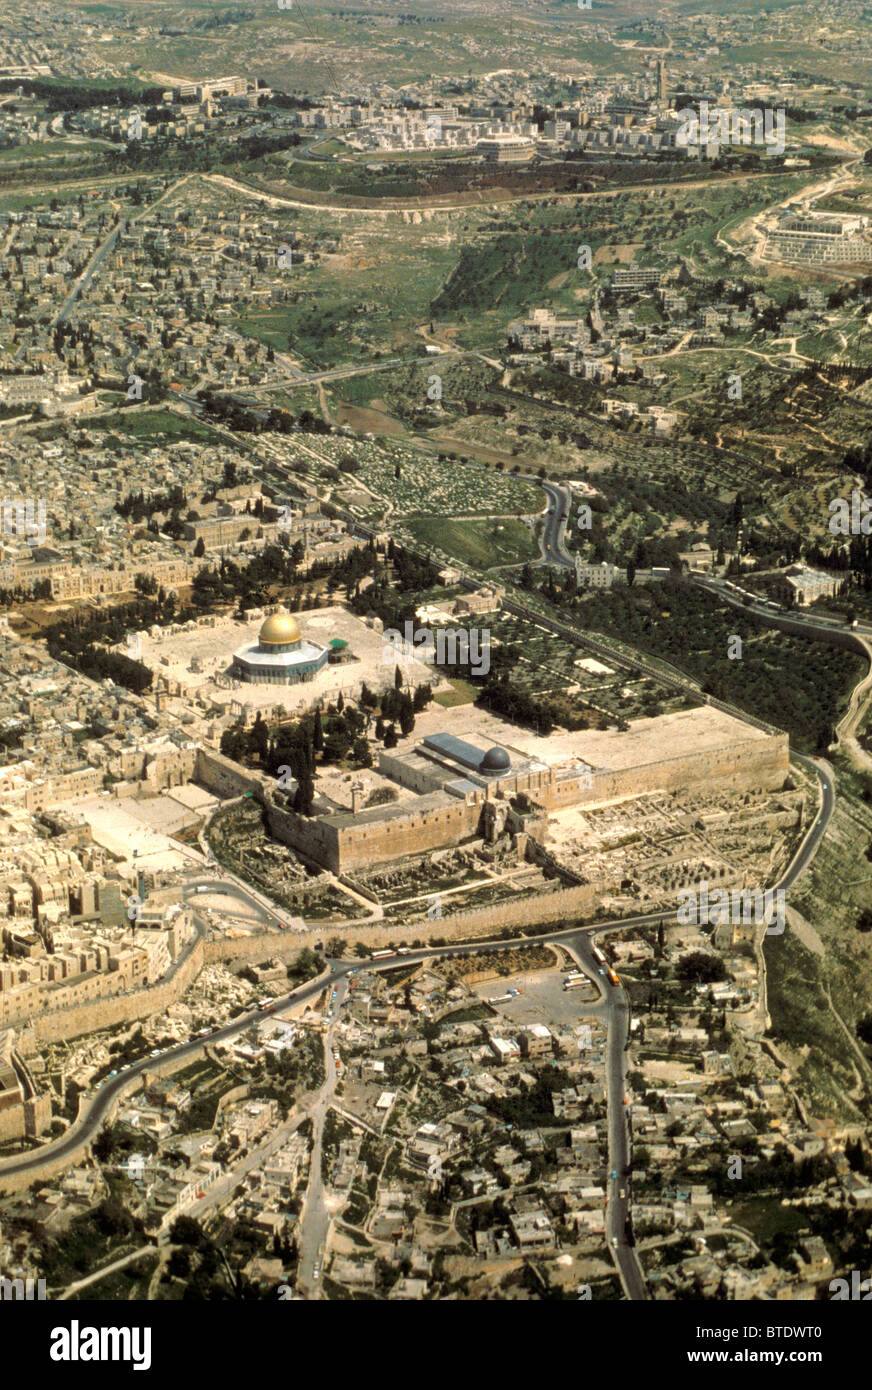 5300. Jerusalem - aerial view from the south. The Temple Mount with the Dome of the Rock is in the centre of the - Stock Image